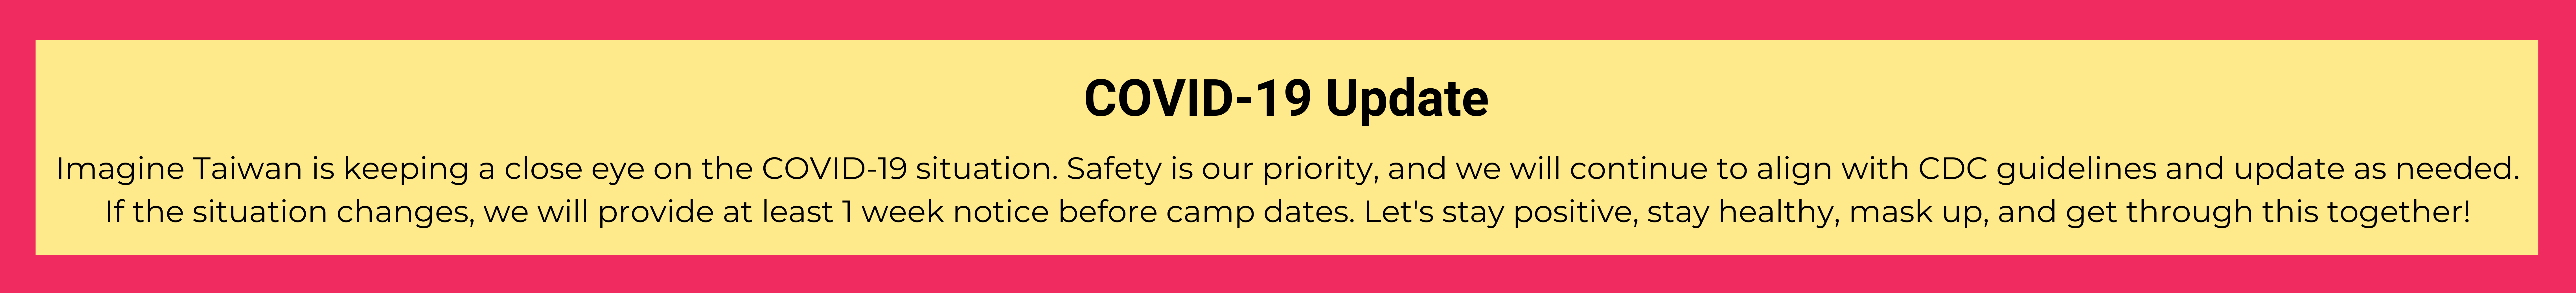 Imagine Taiwan is keeping a close eye on the COVID-19 situation. Safety is our priority, and we will continue to align with CDC guidelines and update as needed. If the situation changes, we will provide at least 1 week notice before camp dates. Let's stay positive, stay healthy, mask up, and get through this together!